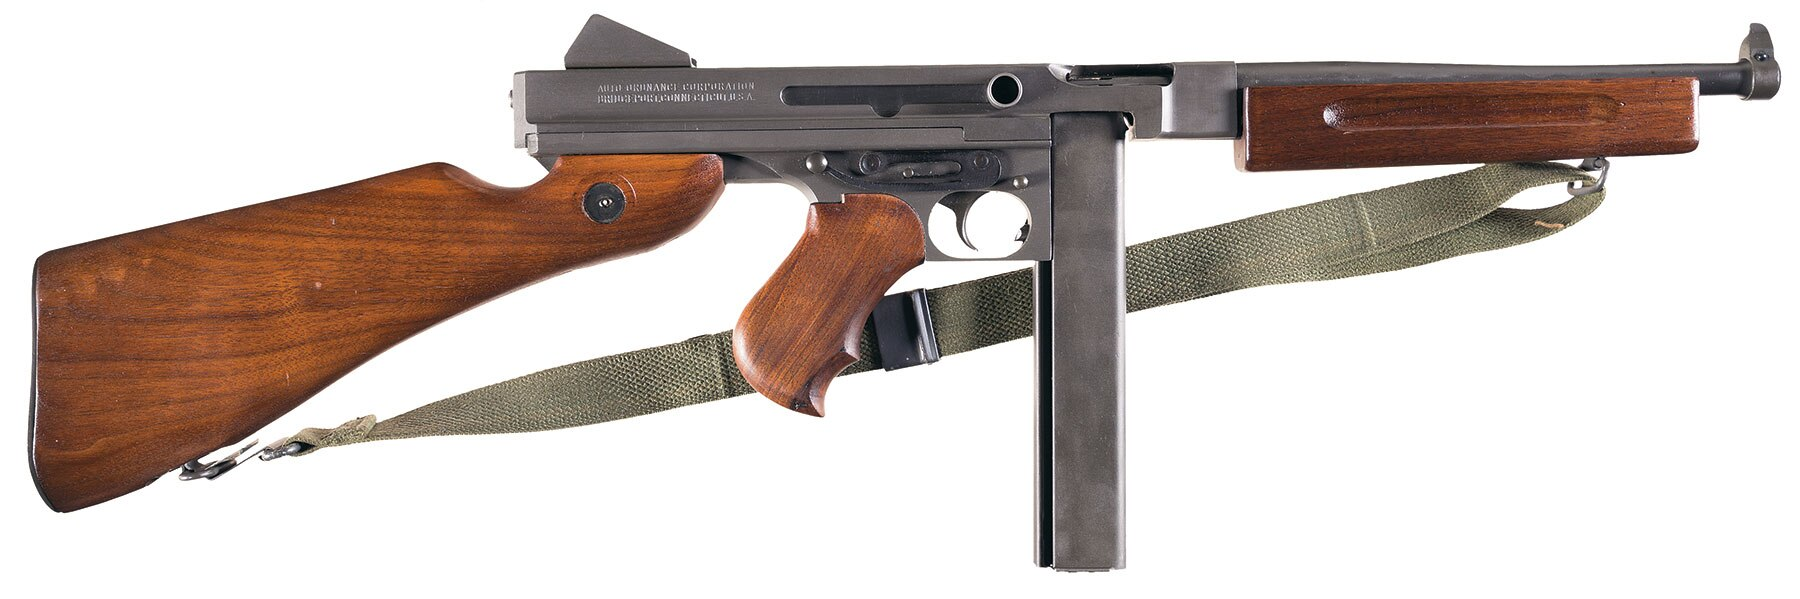 If you want something less well-marked, there is this beautiful World War II U.S.-inspected Auto-Ordnance M1A1 for about half the price.